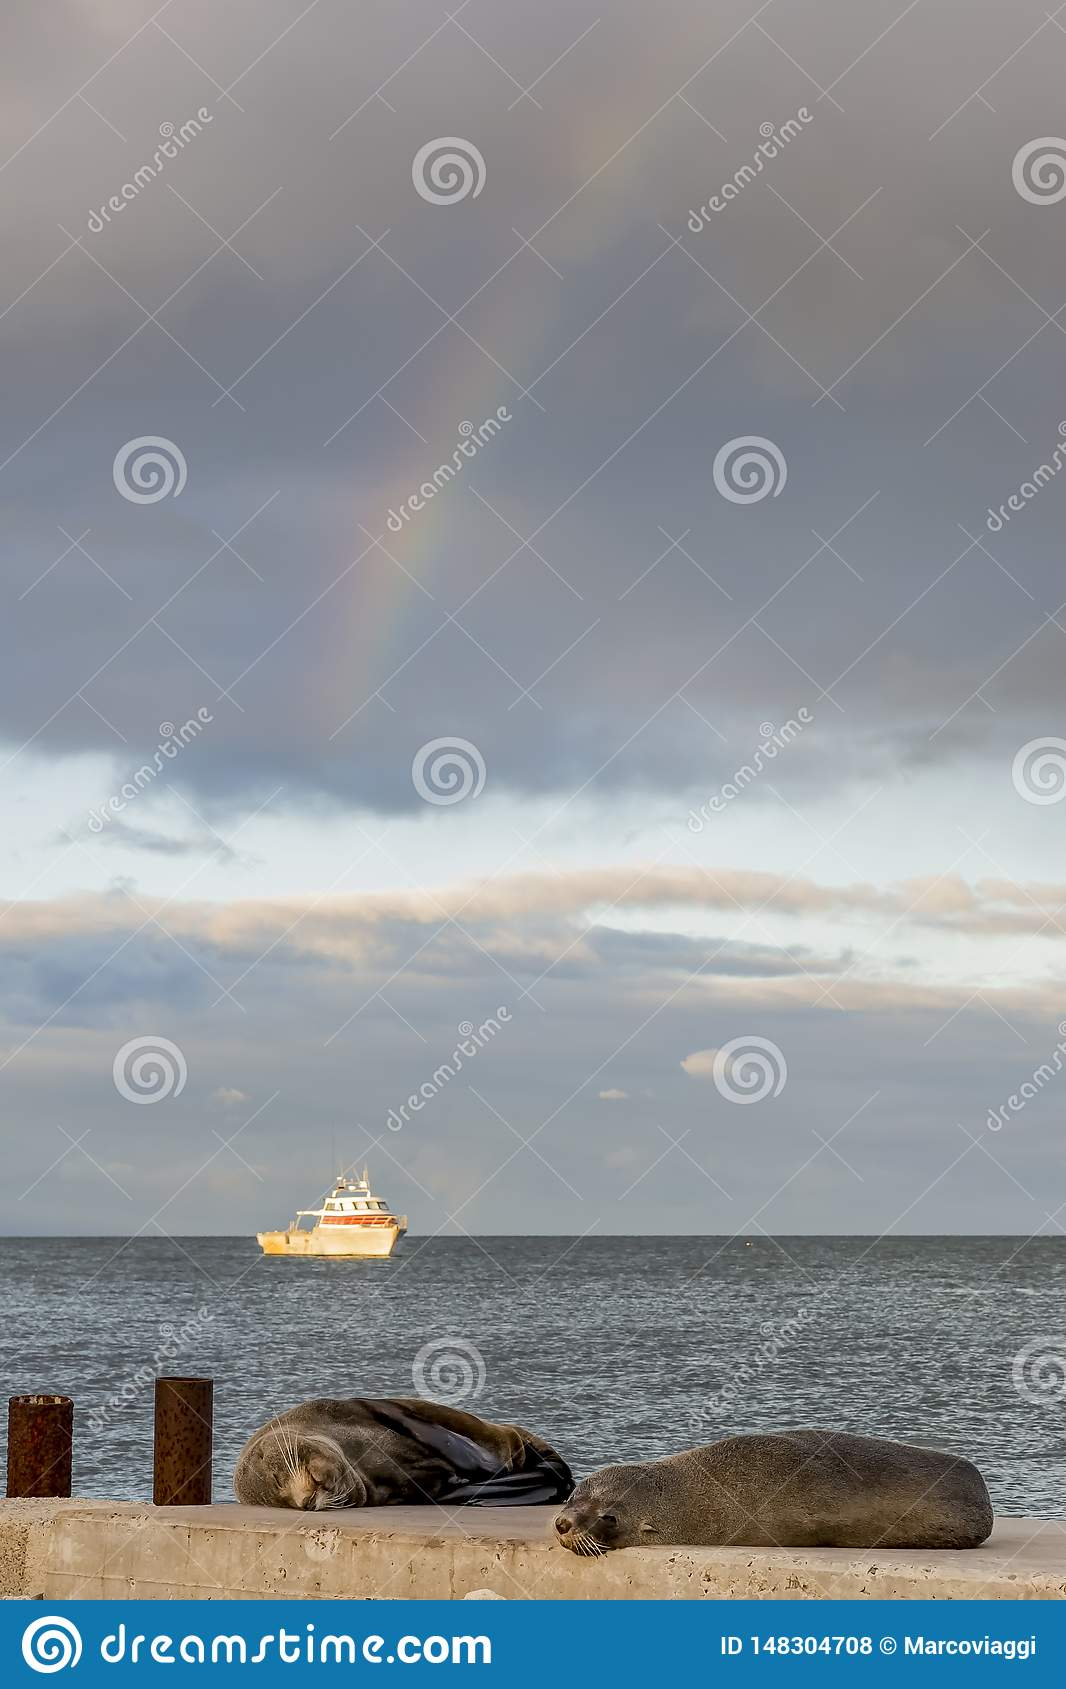 Two sea lions rest on the beach with a fishing boat in the background and the rainbow in the sky, Kingscote, Australia